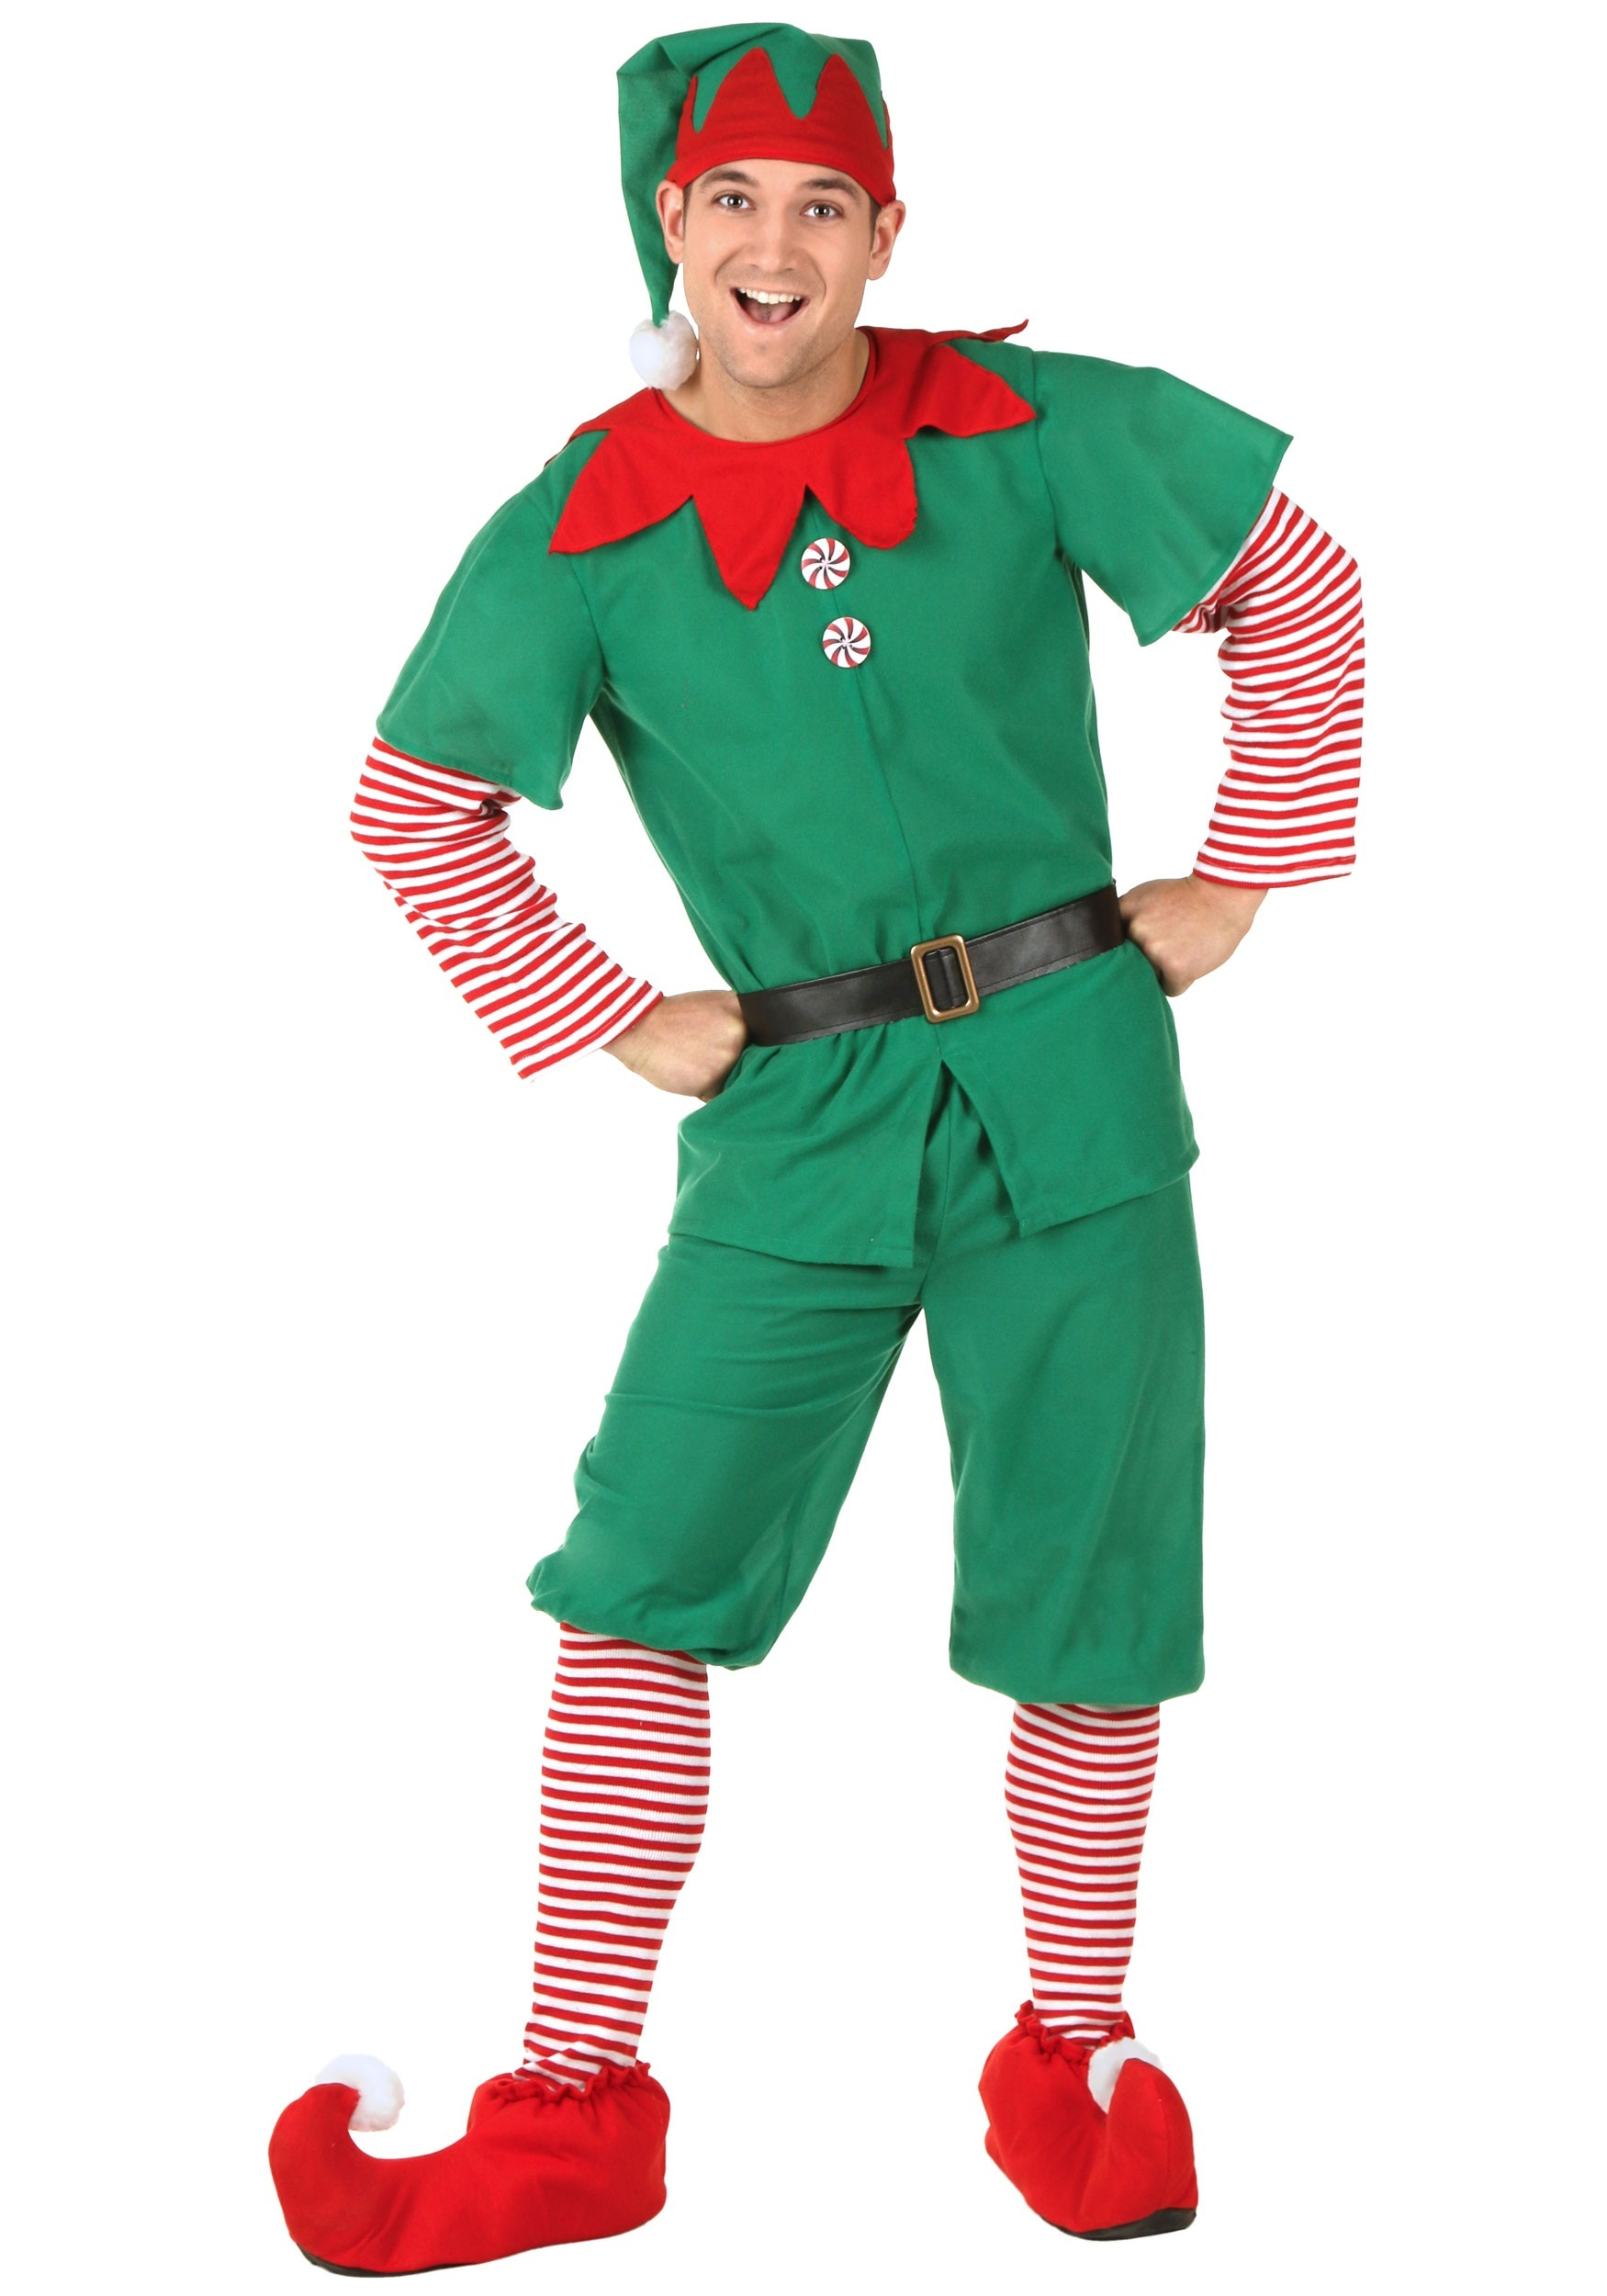 Plus size mens costumes adult plus size halloween costumes for men plus size holiday elf costume solutioingenieria Image collections